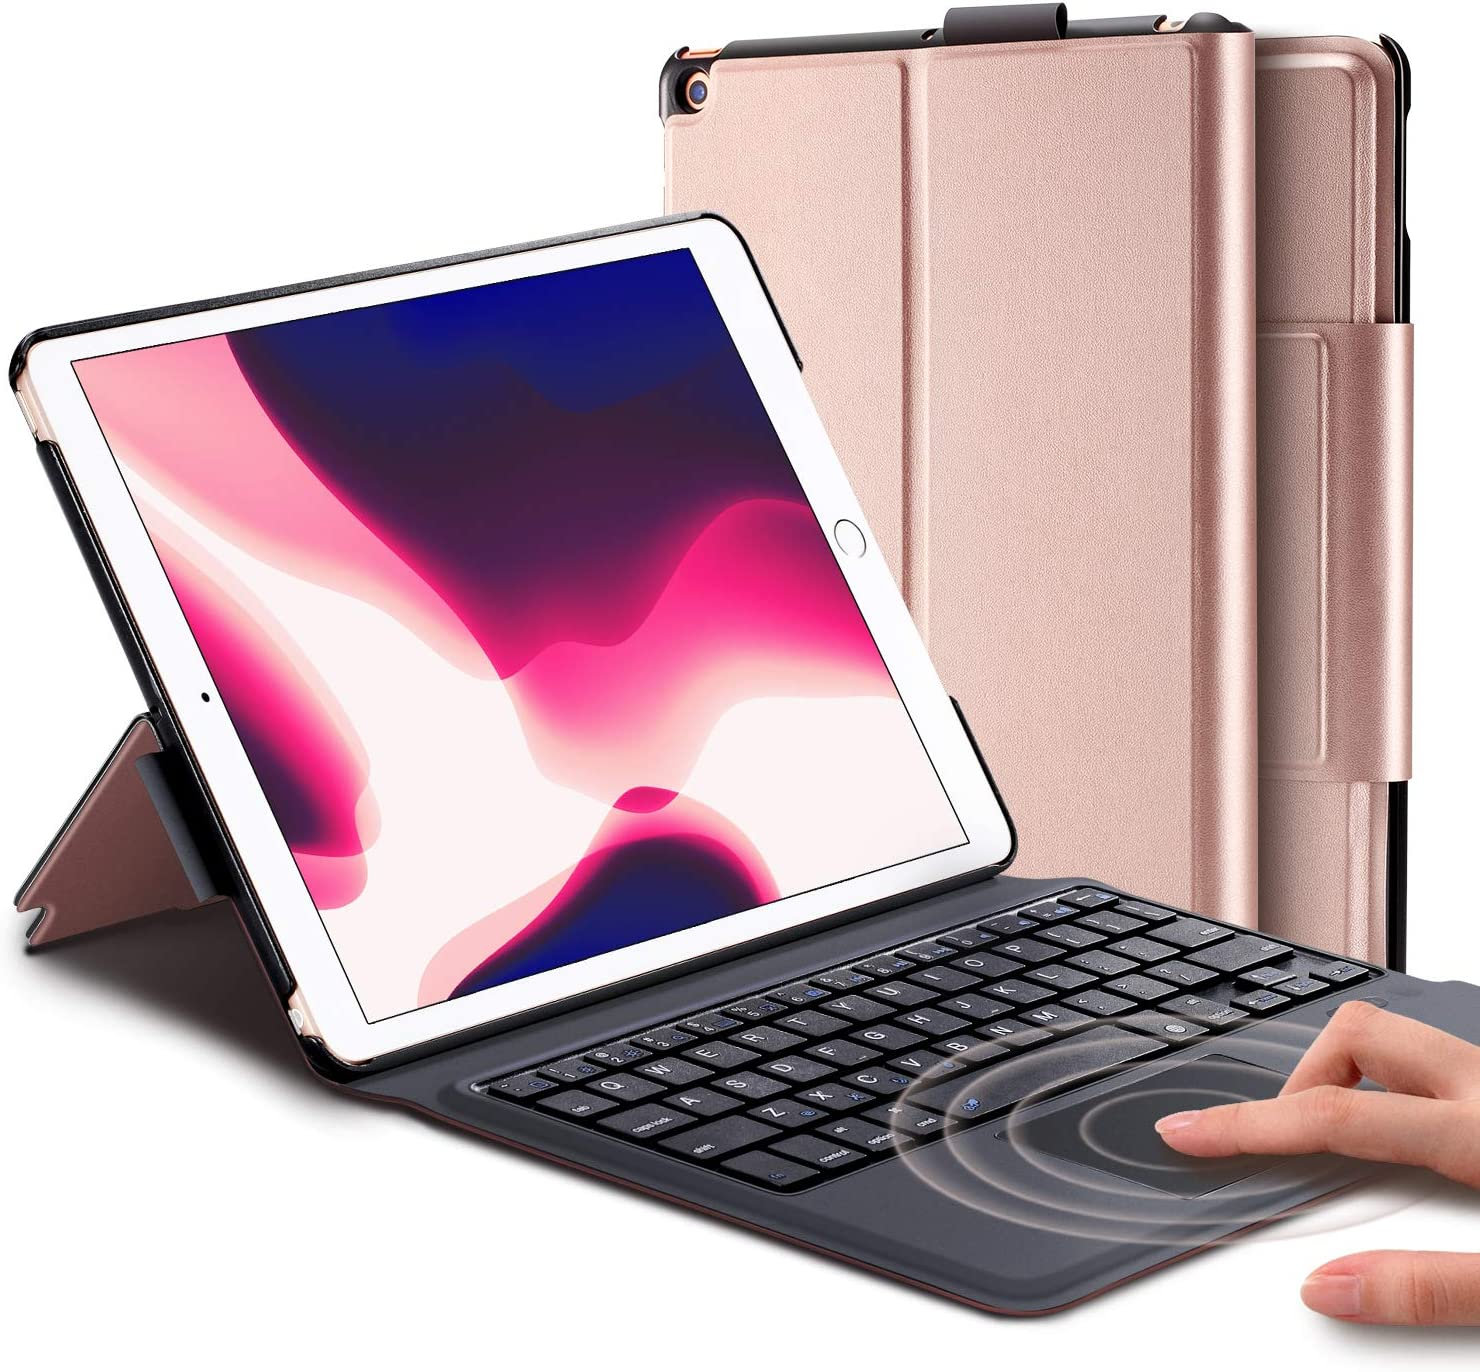 """Keyboard CaseforNewiPad8th Generation 10.2 inch 2020 / 7th (10.2 2019) / iPad Air 3rd Generation10.5 2019/iPad Pro 10.5 2017– Stable Touchpad Function- (10.2/10.5"""", Rose Gold)"""